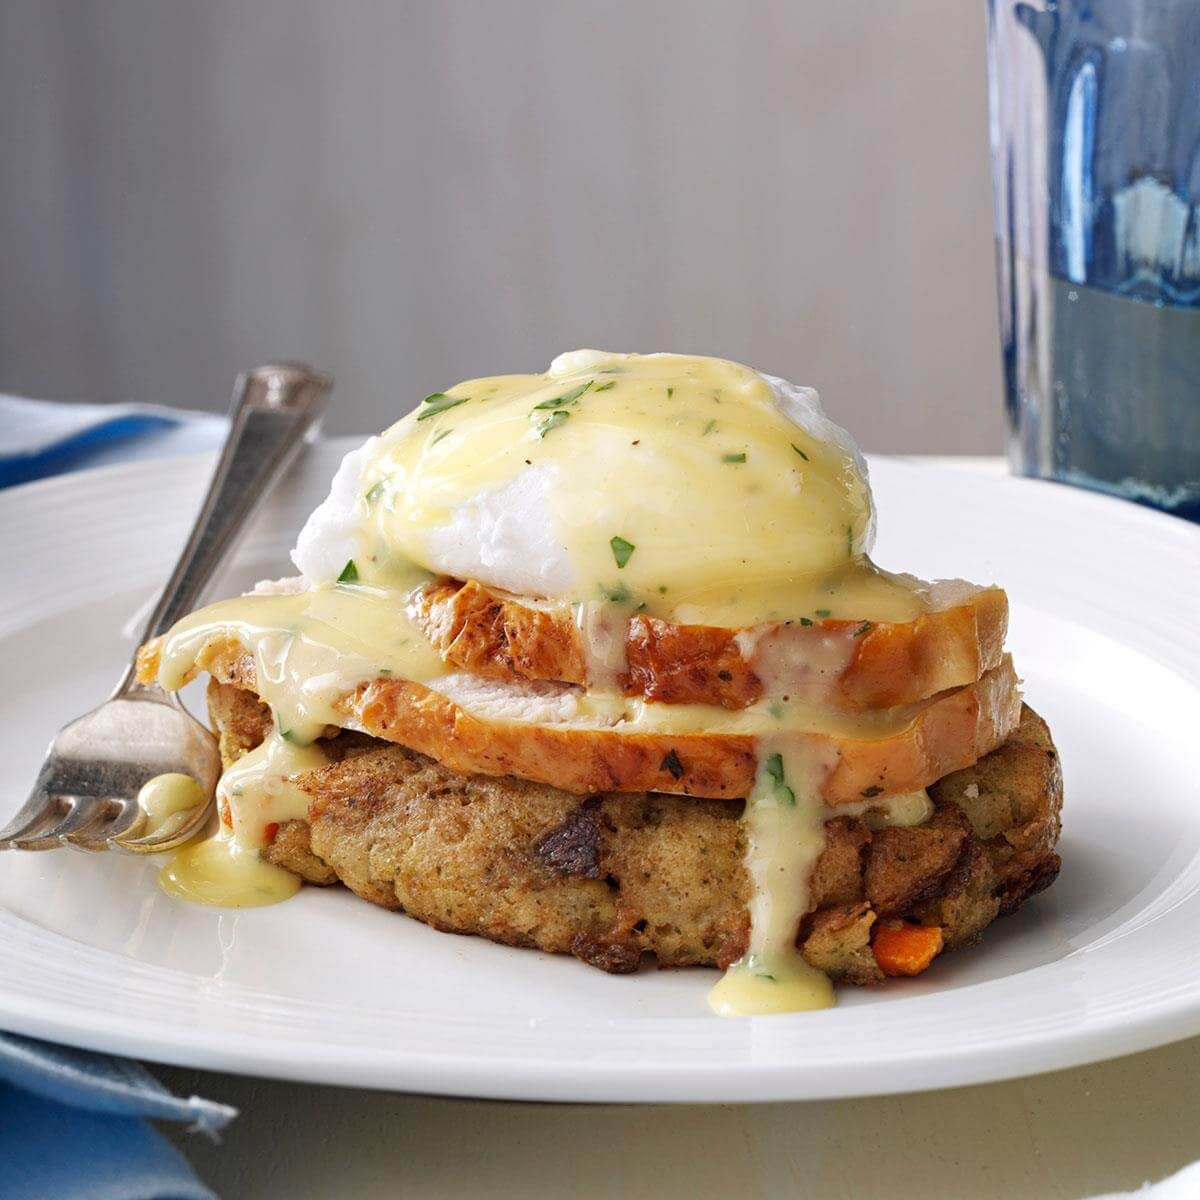 Turkey & Stuffing Eggs Benedict